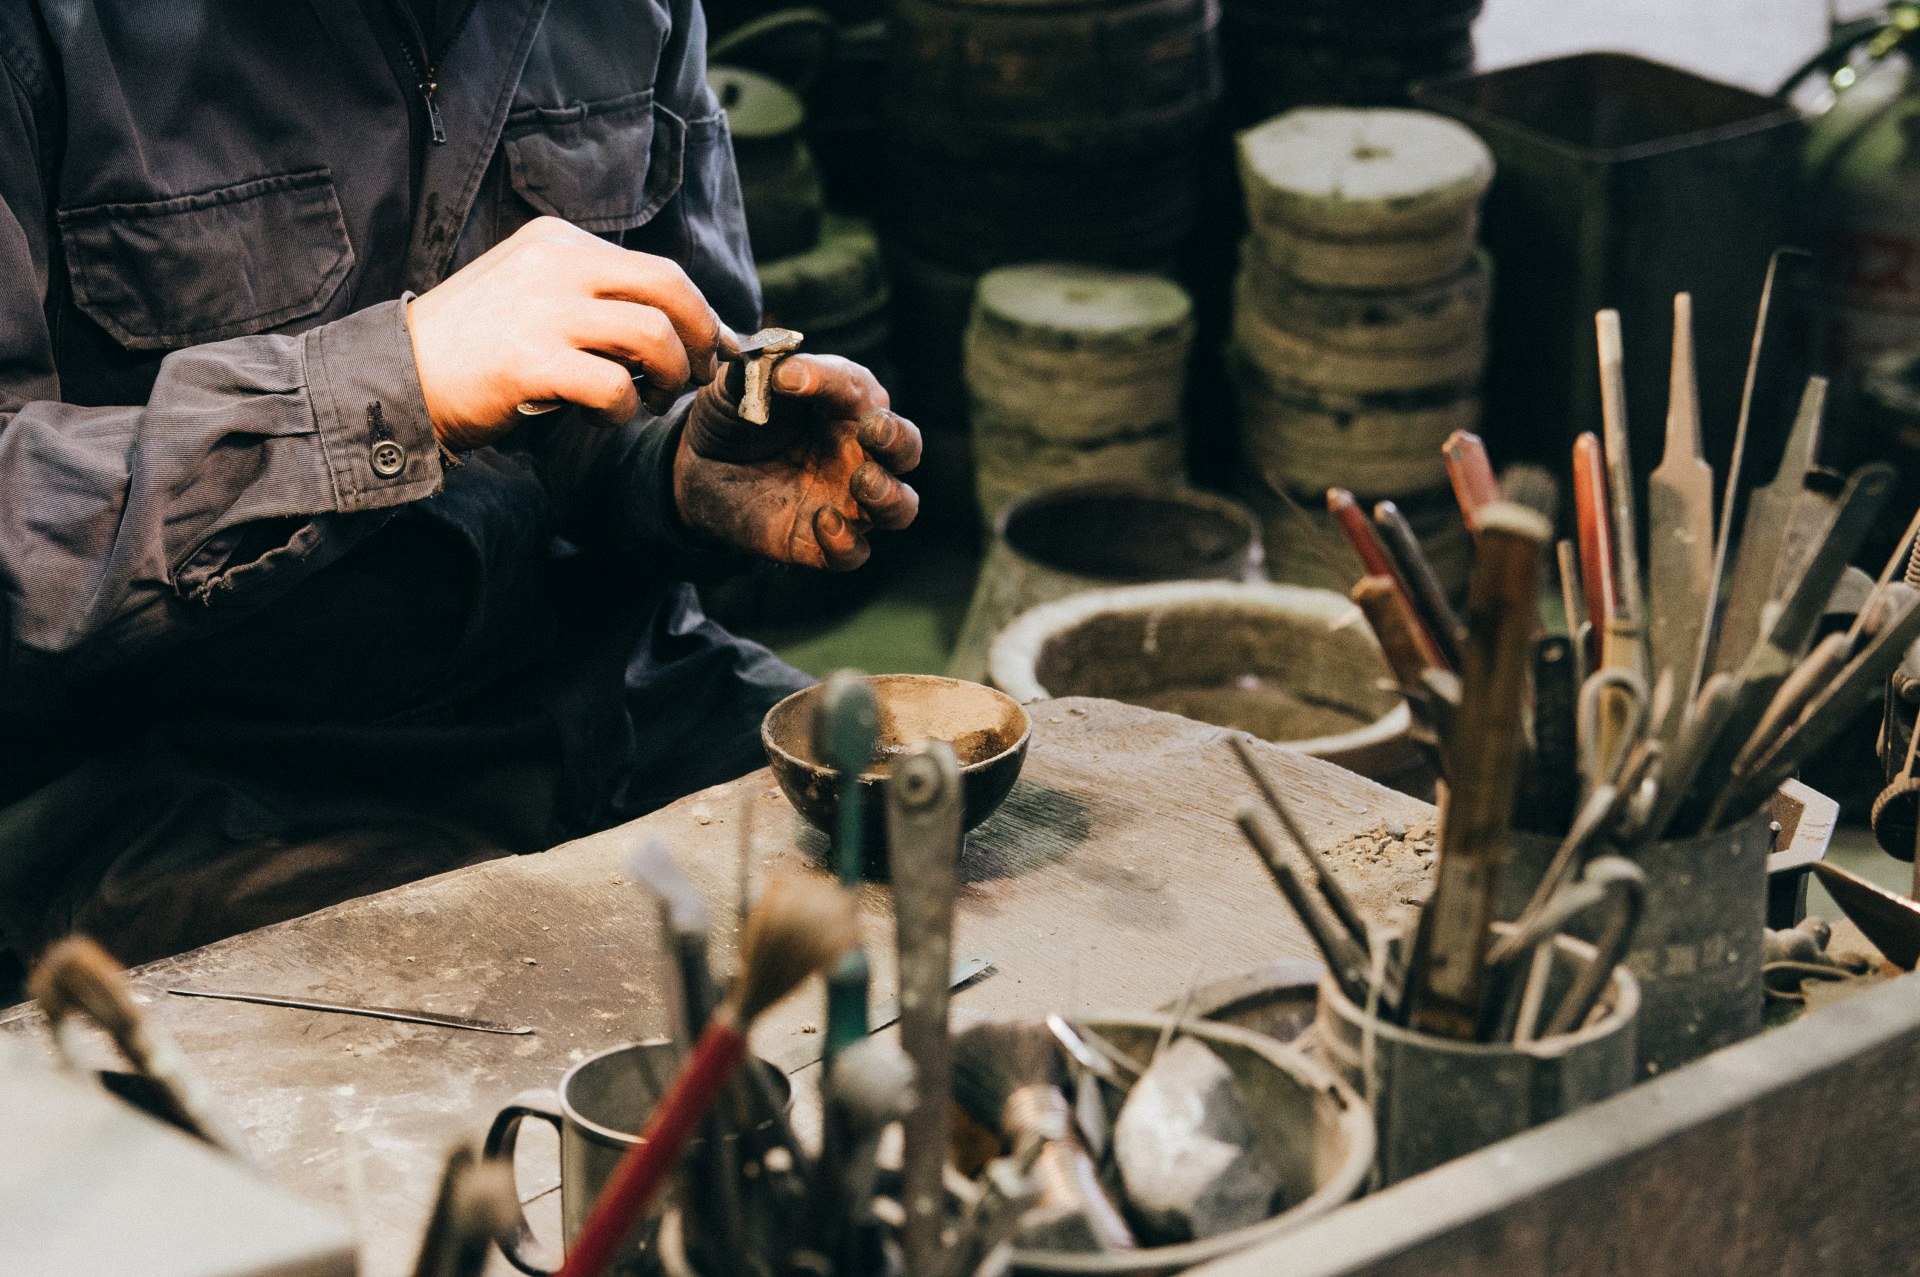 A craftman working on creating a bowl